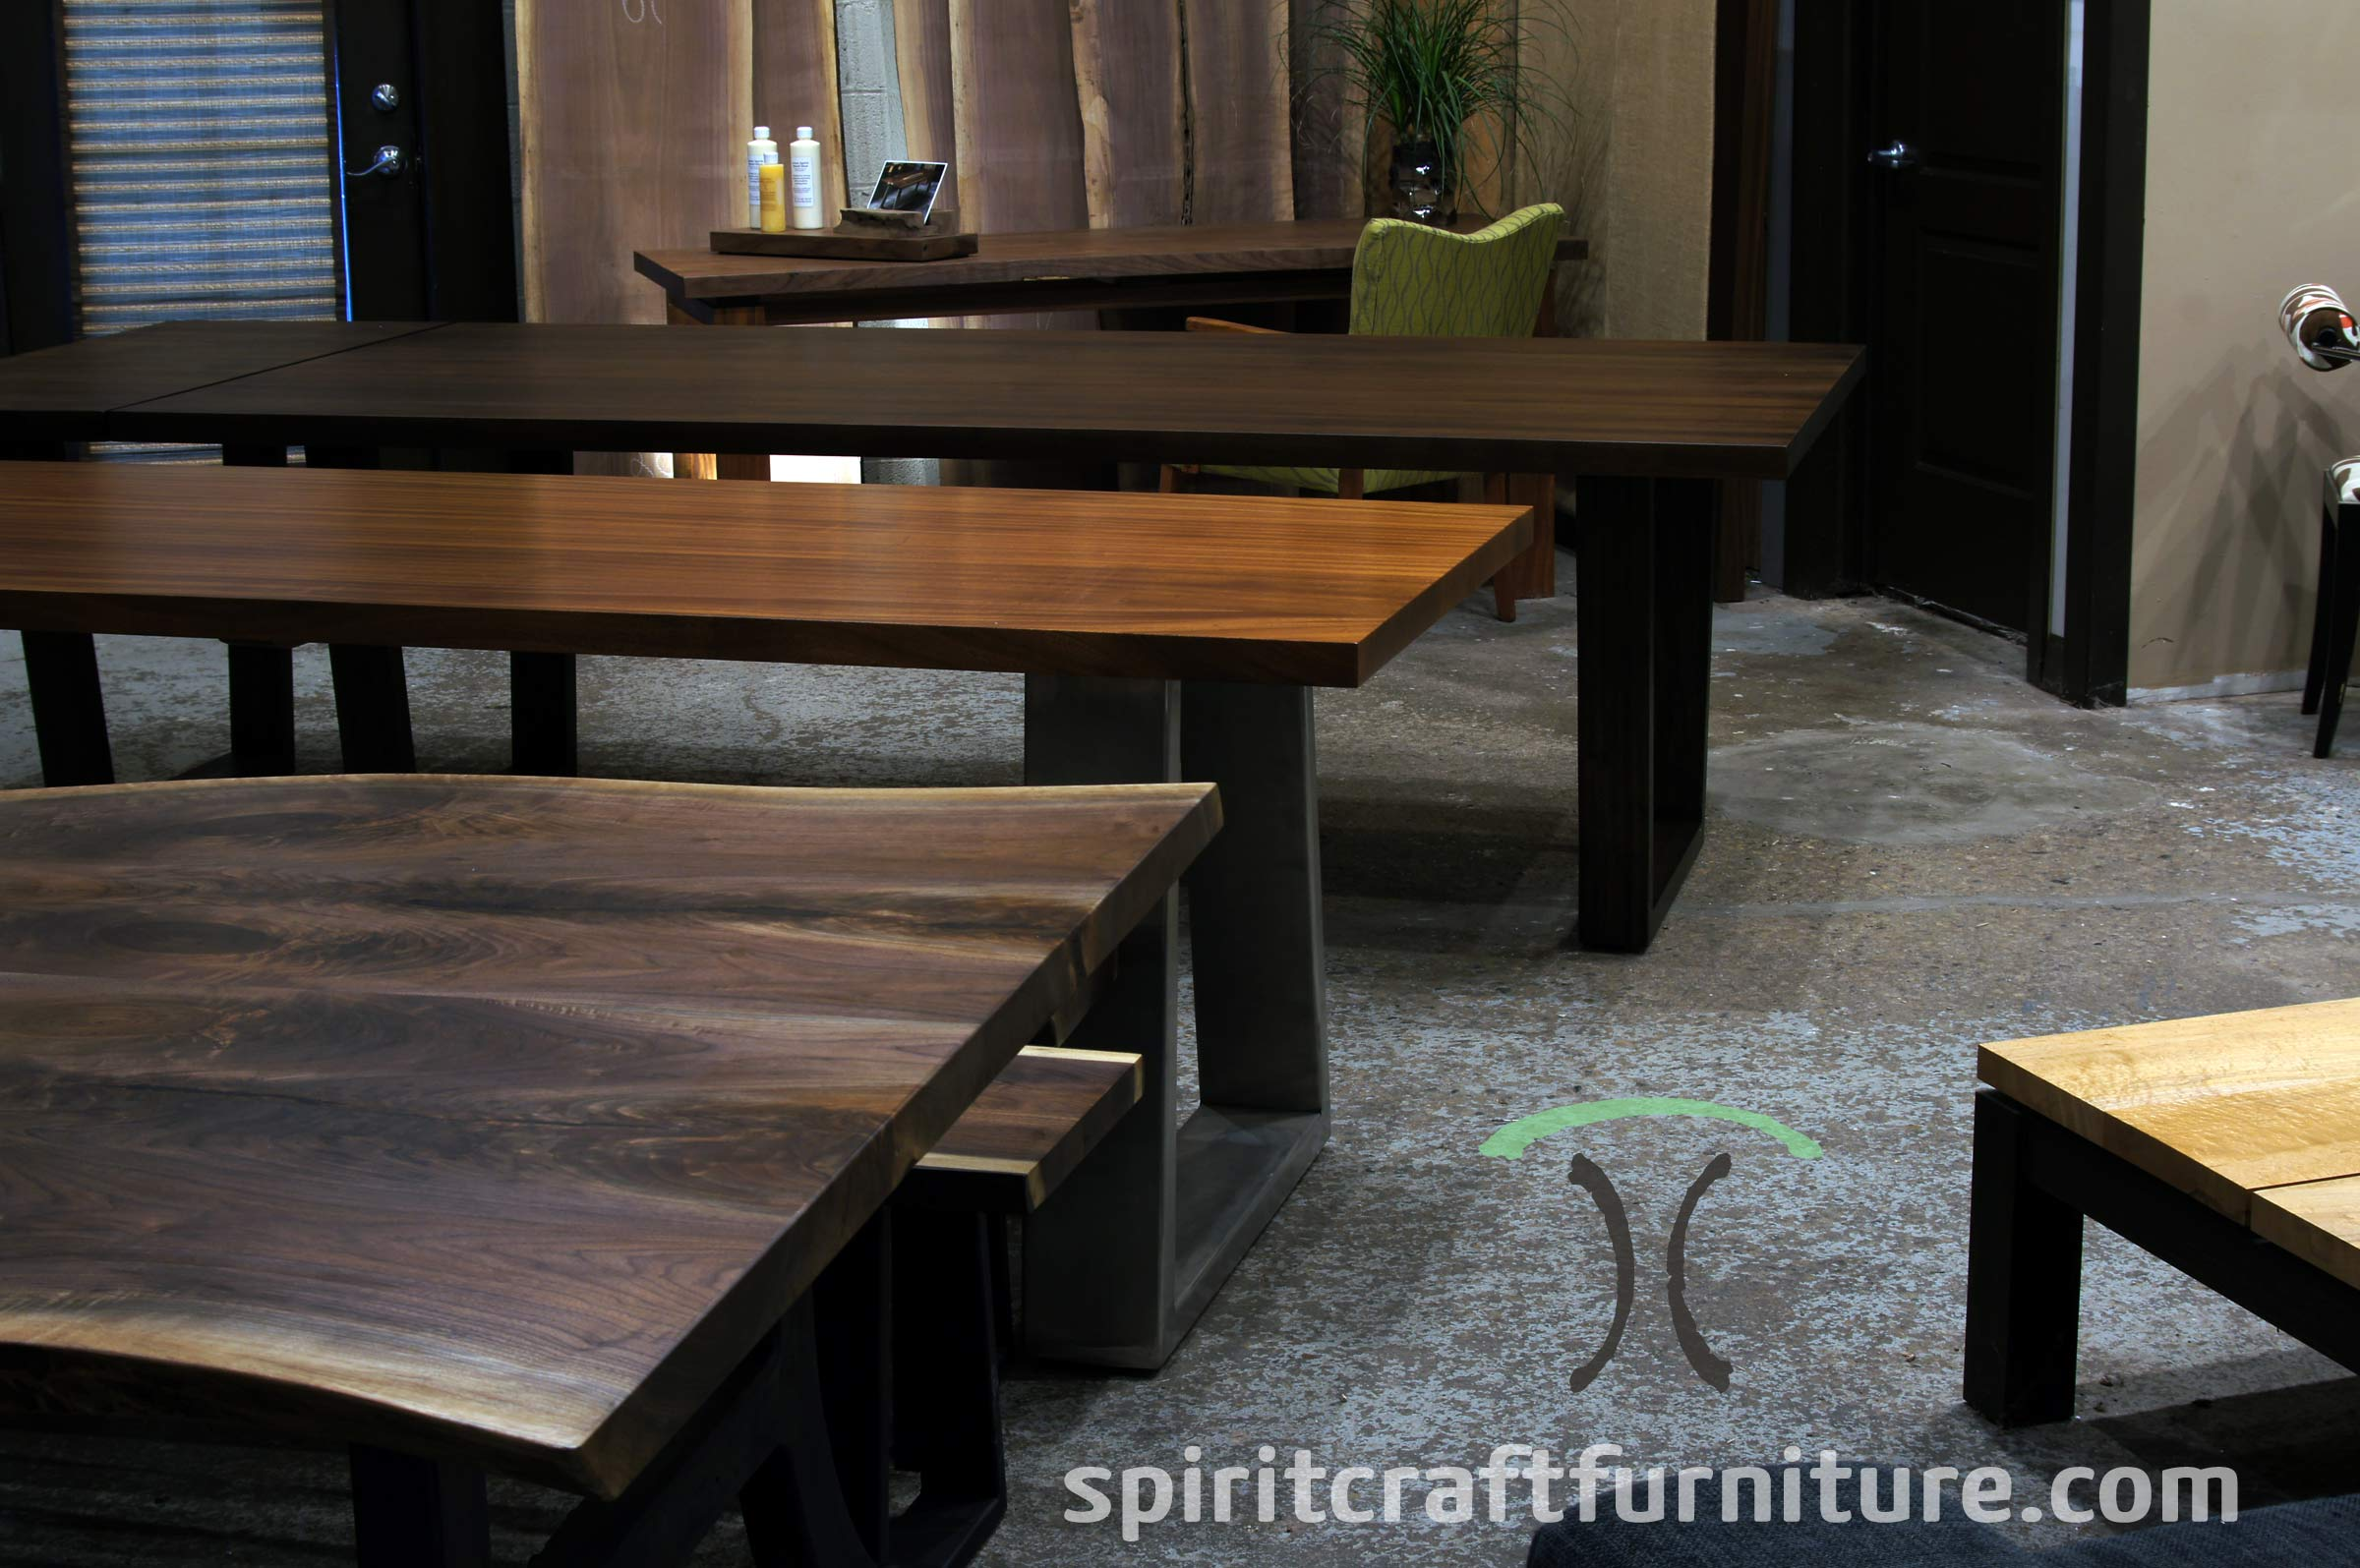 Heirloom quality dining and conference tables on wooden, stainless and steel legs in Sapele Mahogany, Black Walnut and Cherry at our Chicago area furniture Company in East Dundee, IL.